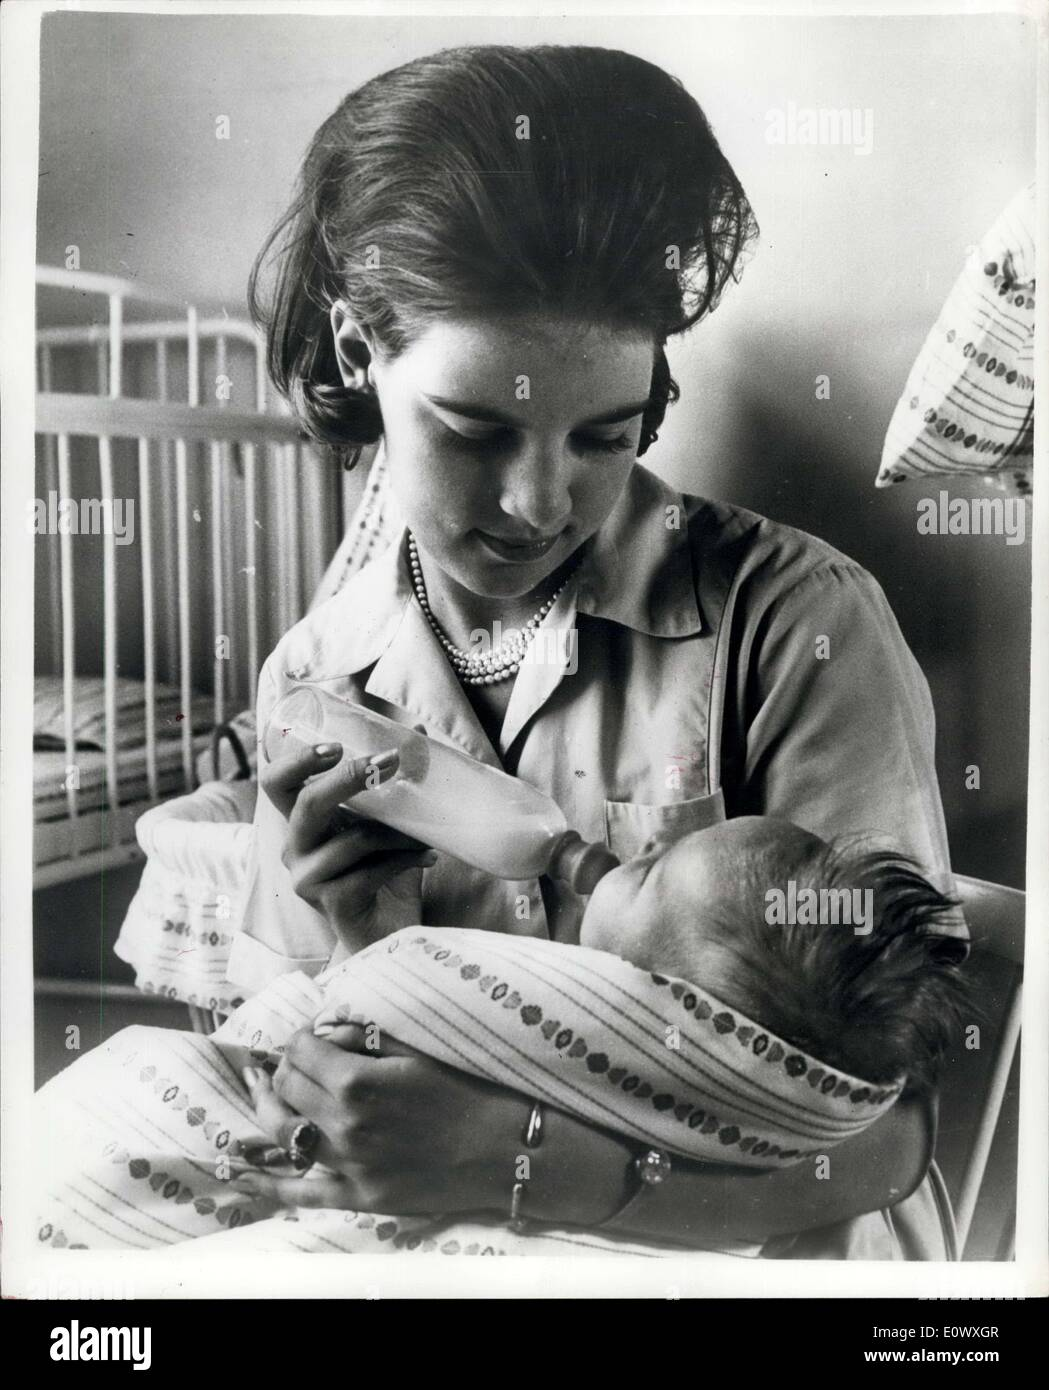 Aug. 06, 1964 - Embargo Until June 12th: Greek Queen-to-be learns child nursery: Princess Anne-Marie, who is engaged to King Constantine of Greece has for some time been learning child nursery at a Copenhagen home for children. Her wedding to the King is due to take place in Athens on September 18th. Photo shows The Princess bottle-feeds a baby. - Stock Image